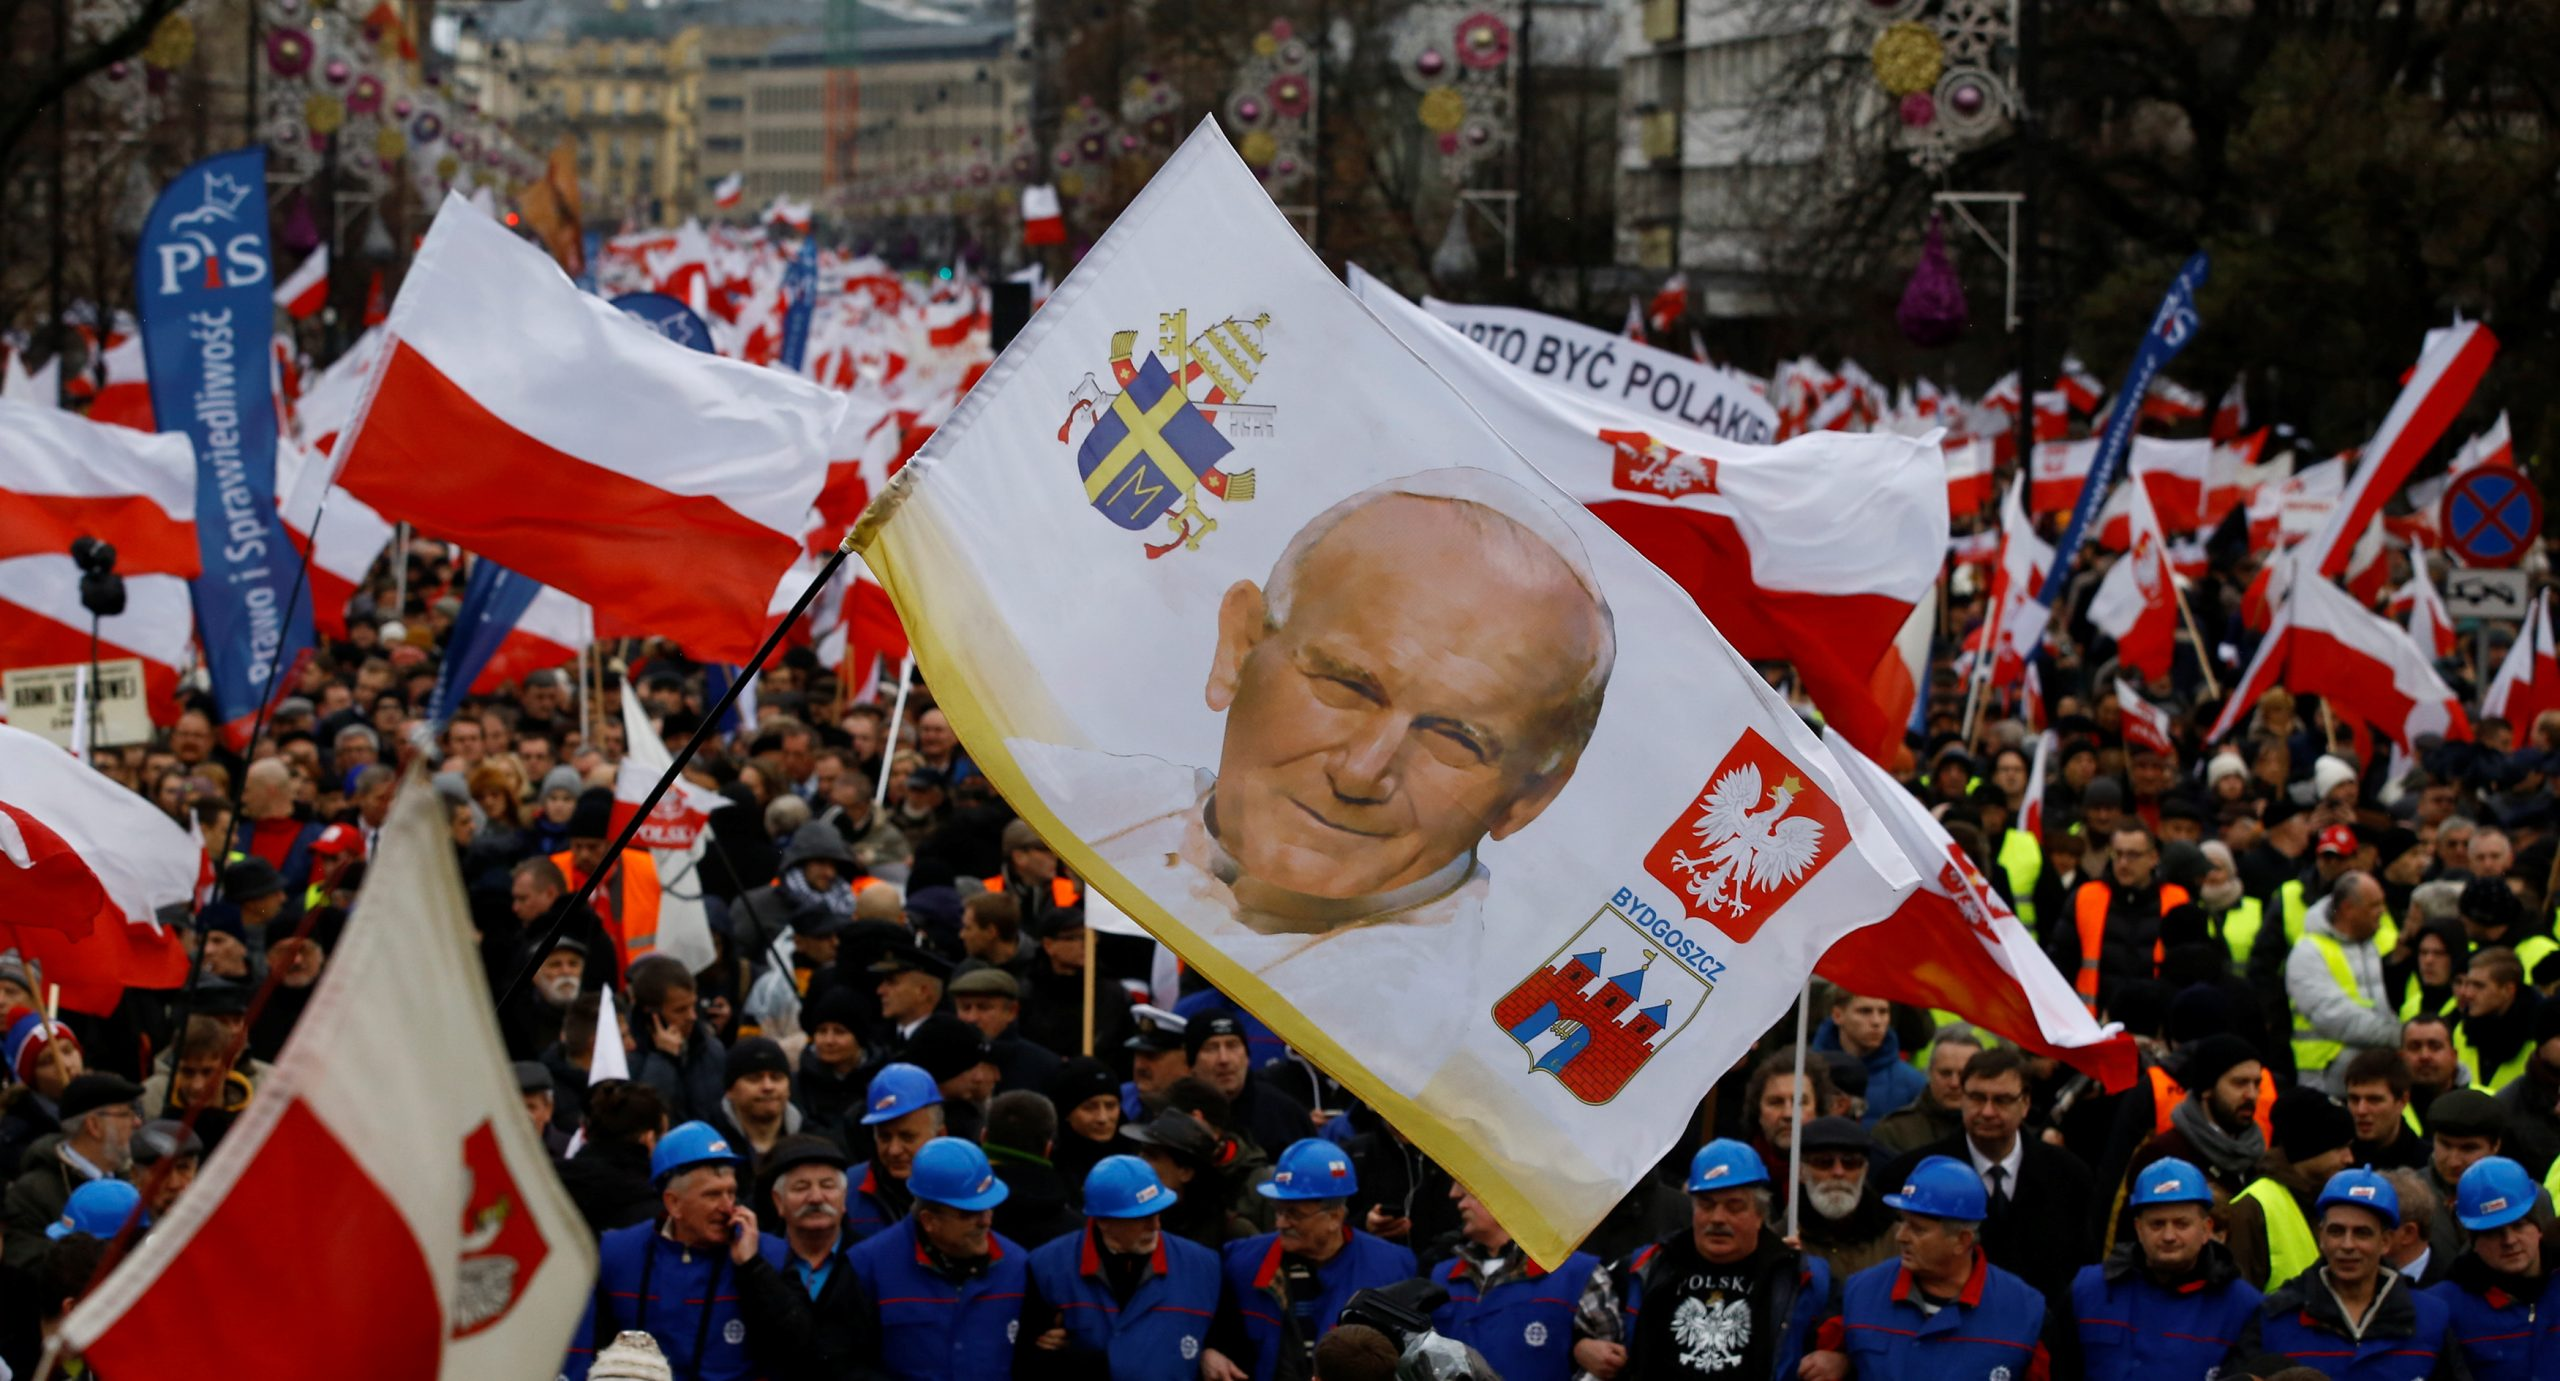 Supporters of Law and Justice party walk with a portrait of late Pope John Paul II during a pro-government demonstration in Warsaw